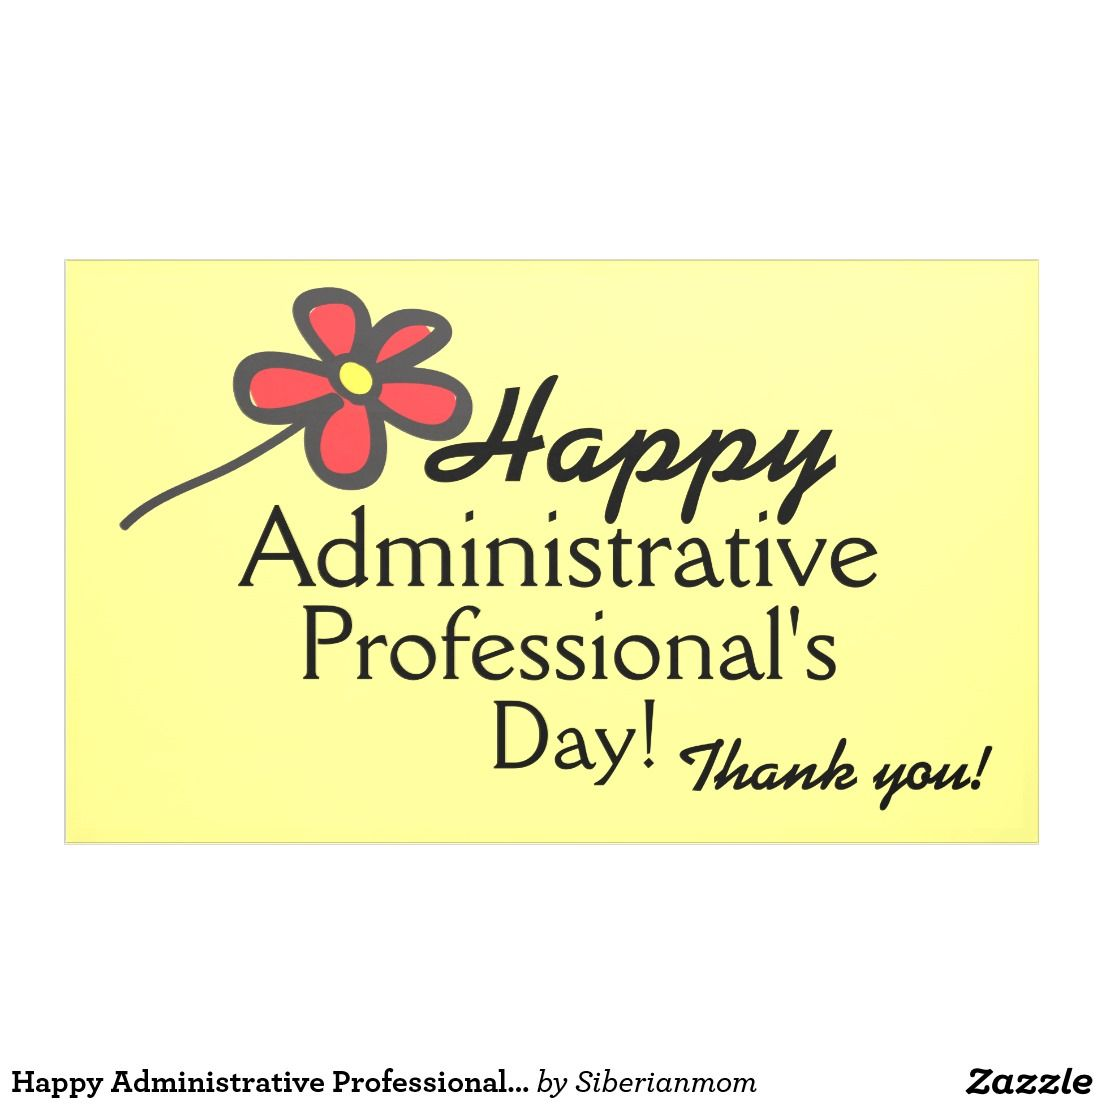 Thank You Quotes For Administrative Professionals Day: Happy Administrative Professional's Day Banner